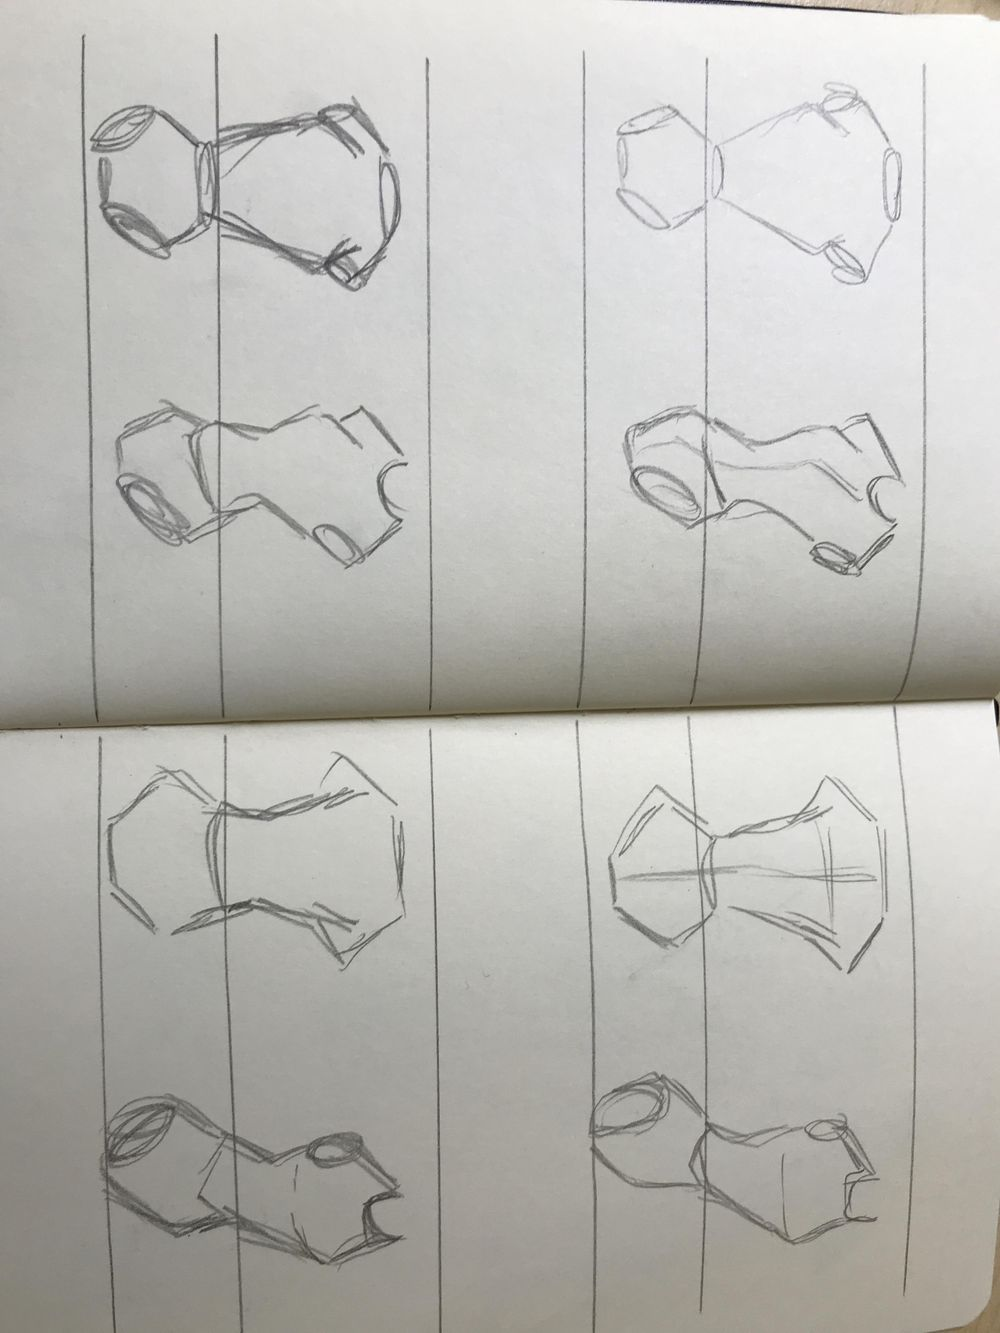 Female Body sketching - image 3 - student project